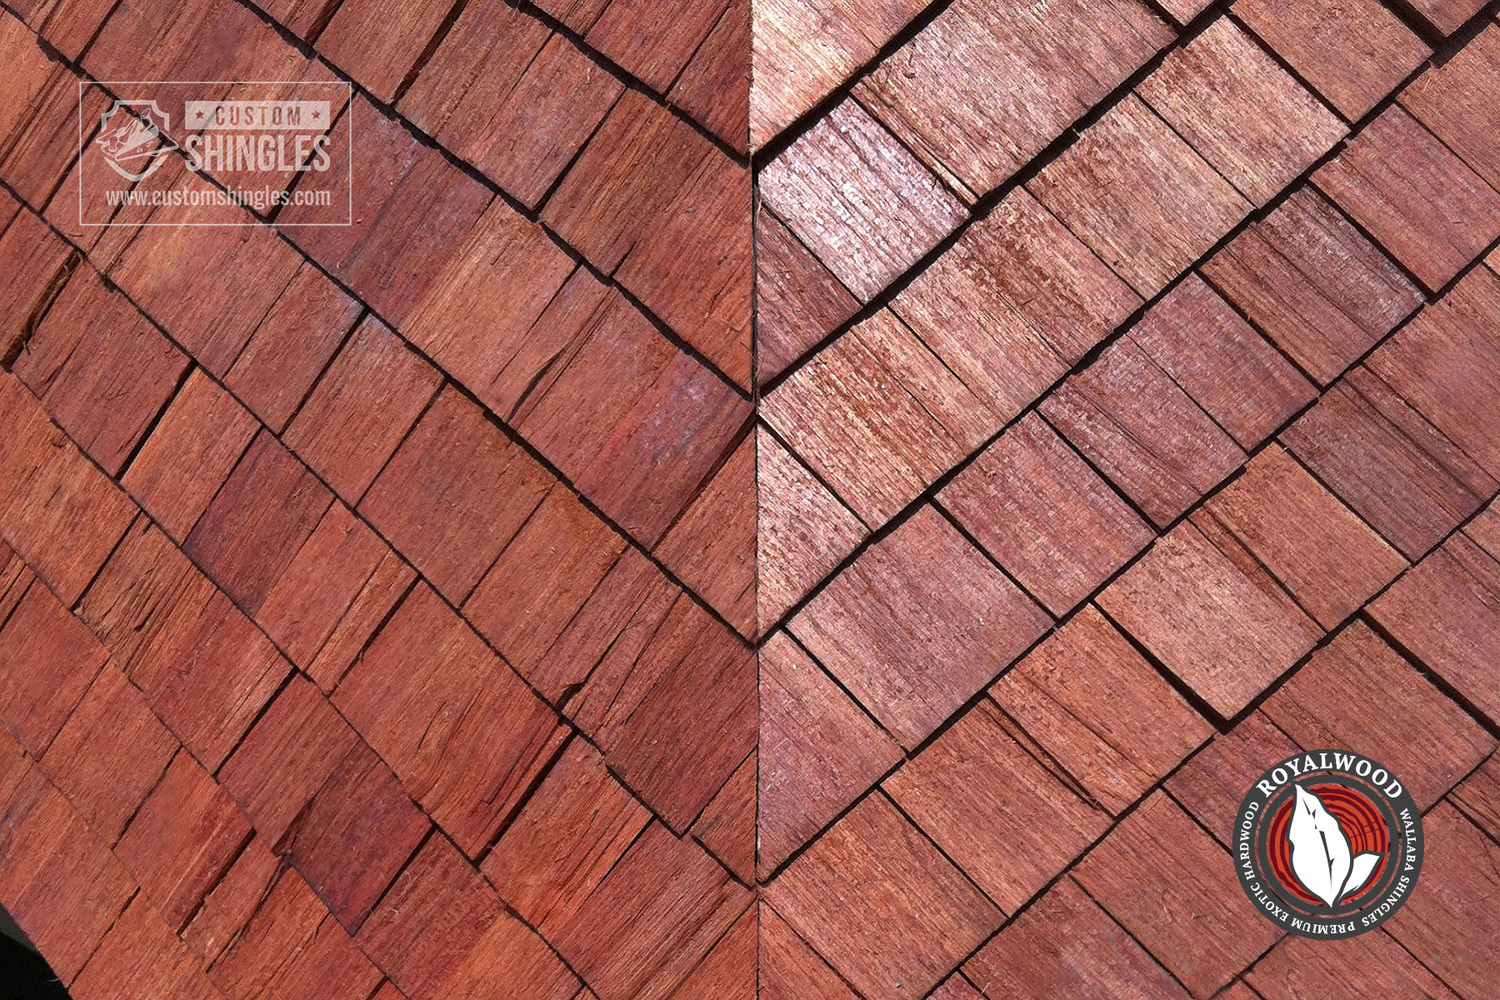 royalwood wallaba shingles